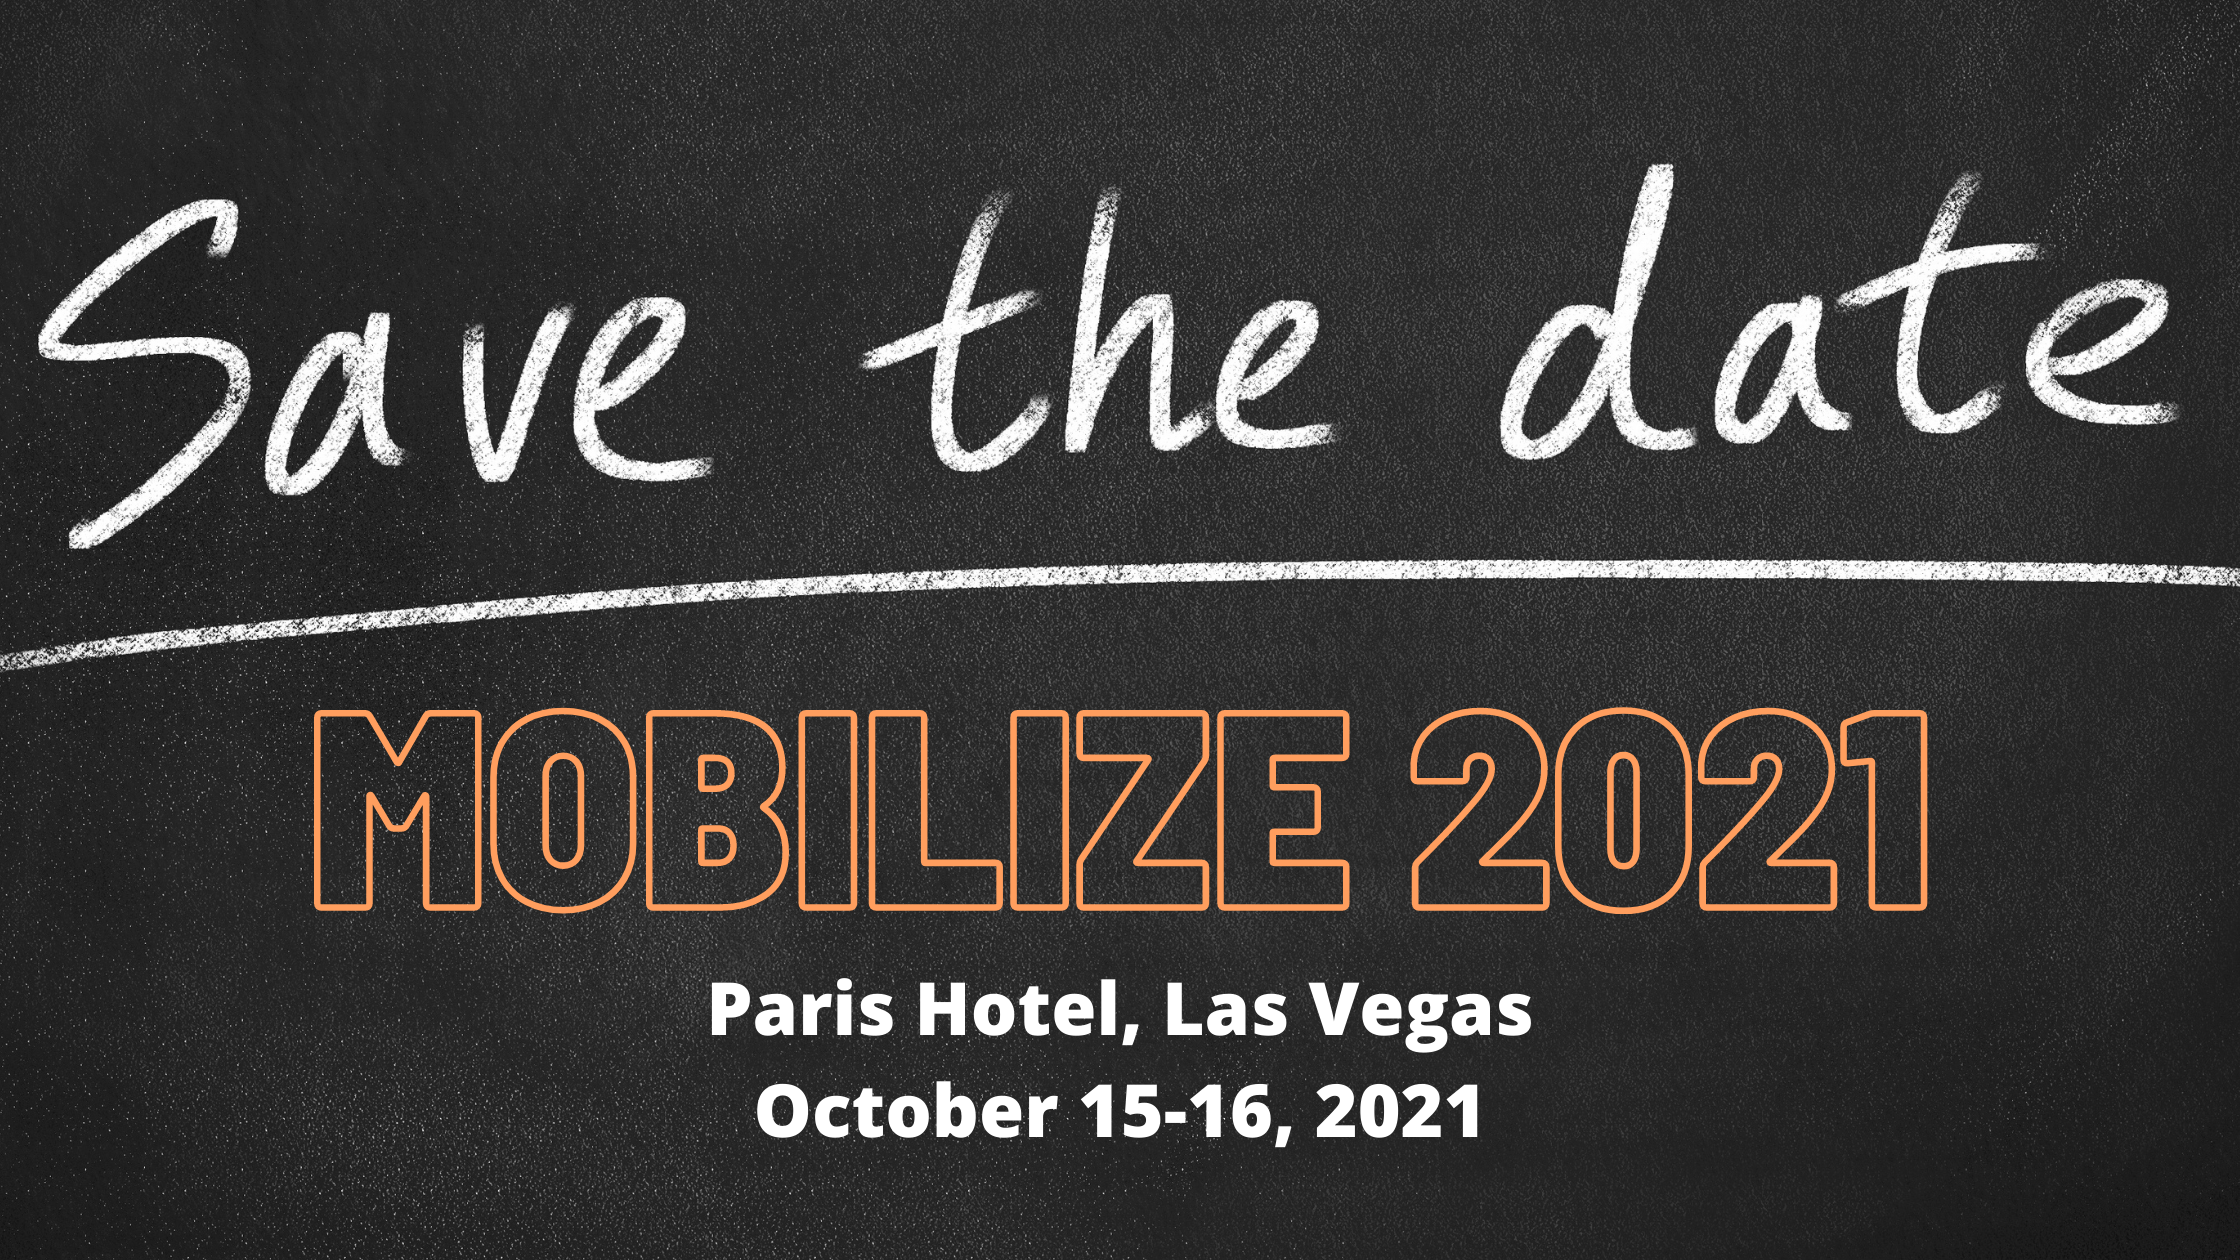 Save the Date Mobilize 2021